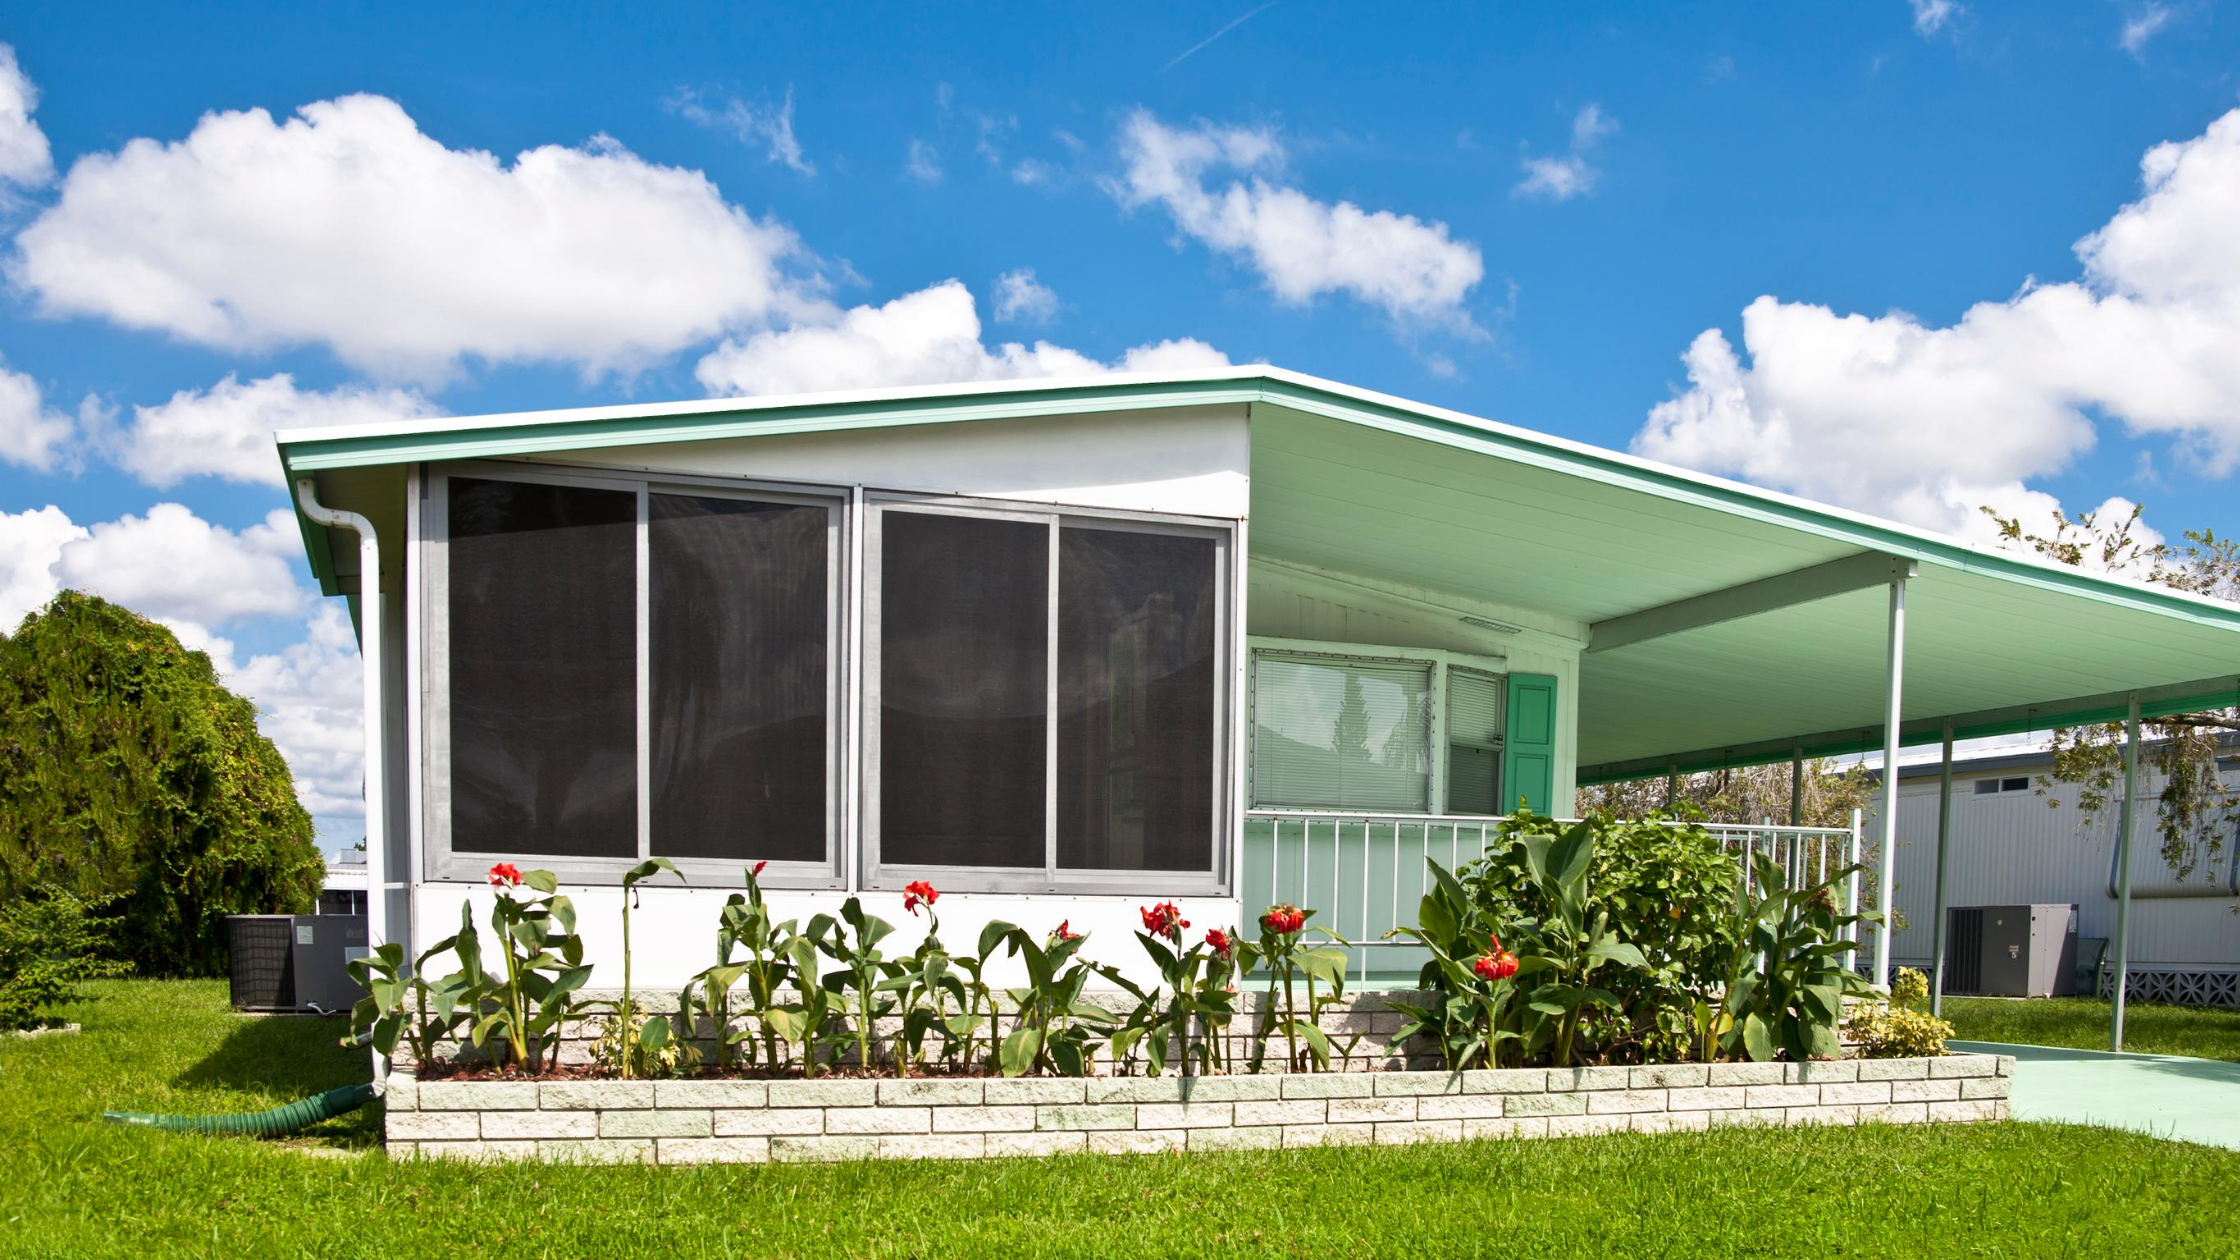 Benefits of Adding Manufactured Home Loans to Your Portfolio